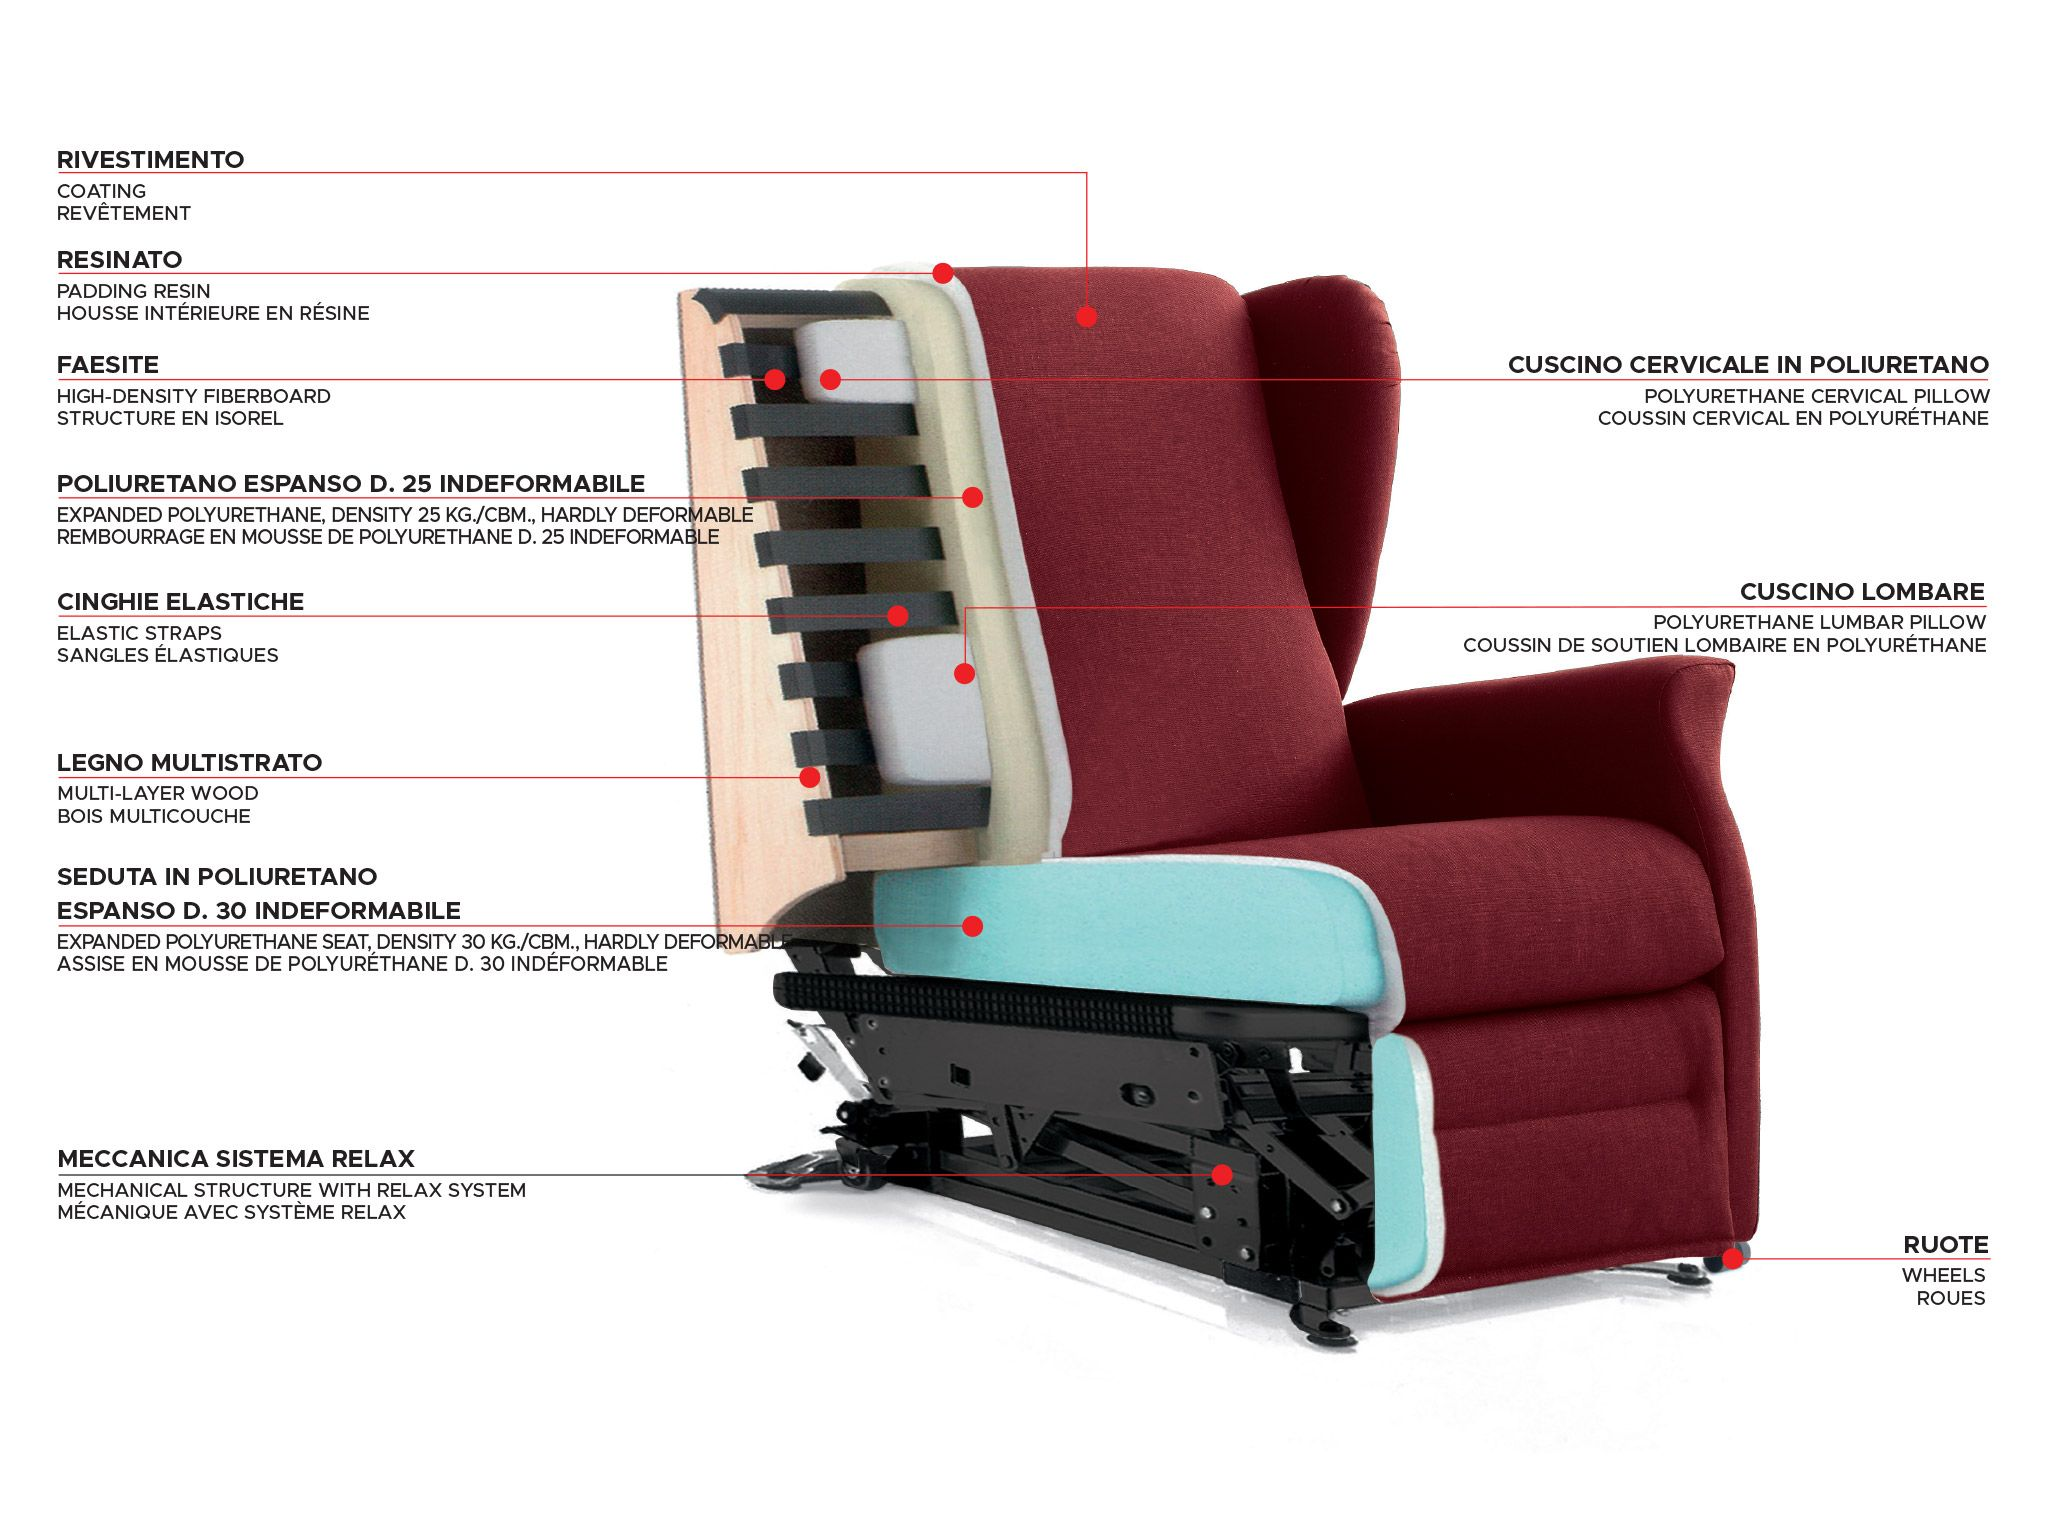 Technical Sheet Of A Stilfaritalia Relax Armchair Equipped With Electric  Engine